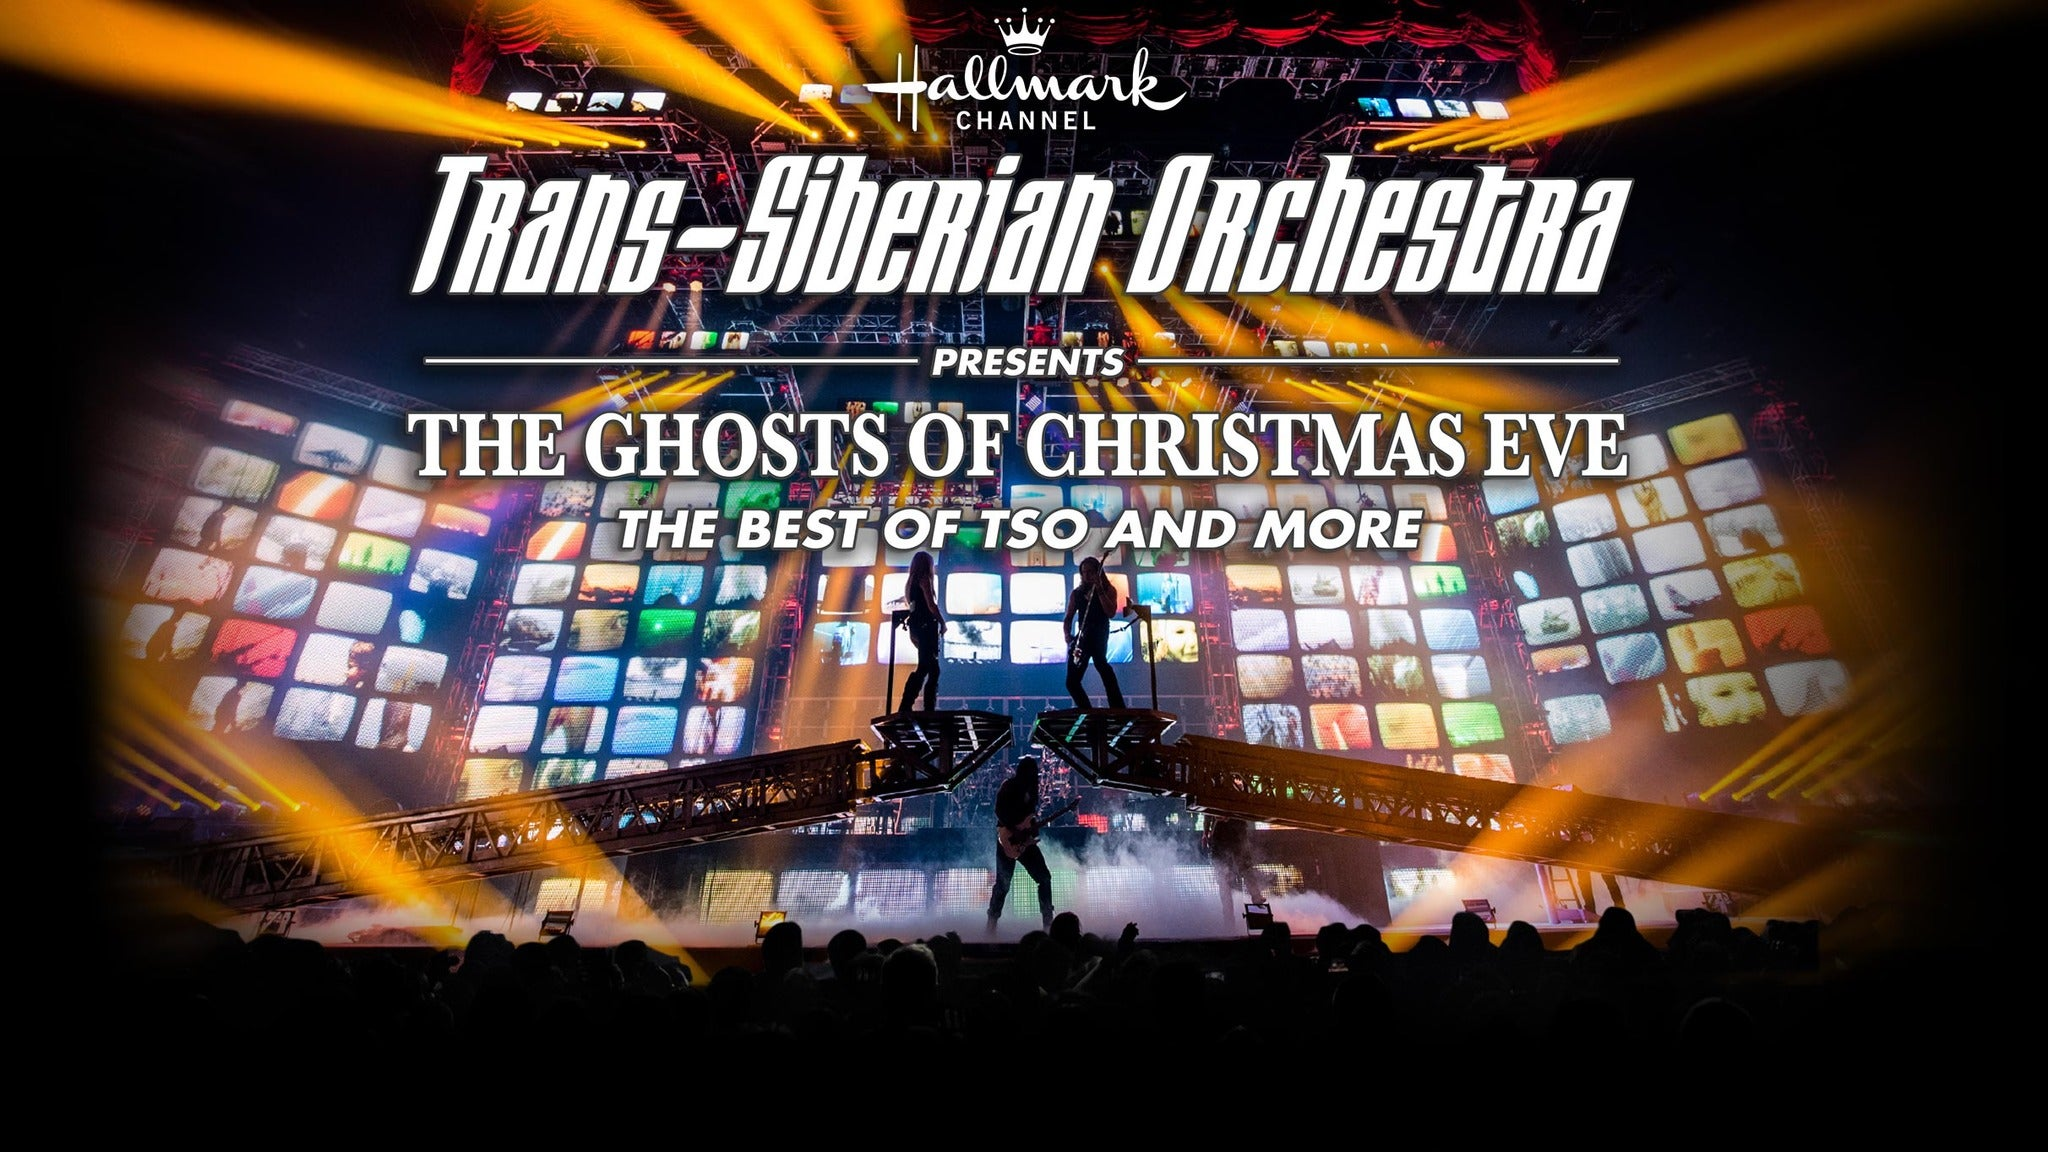 Trans-Siberian Orchestra Presented by Hallmark Channel - Council Bluffs, IA 51501